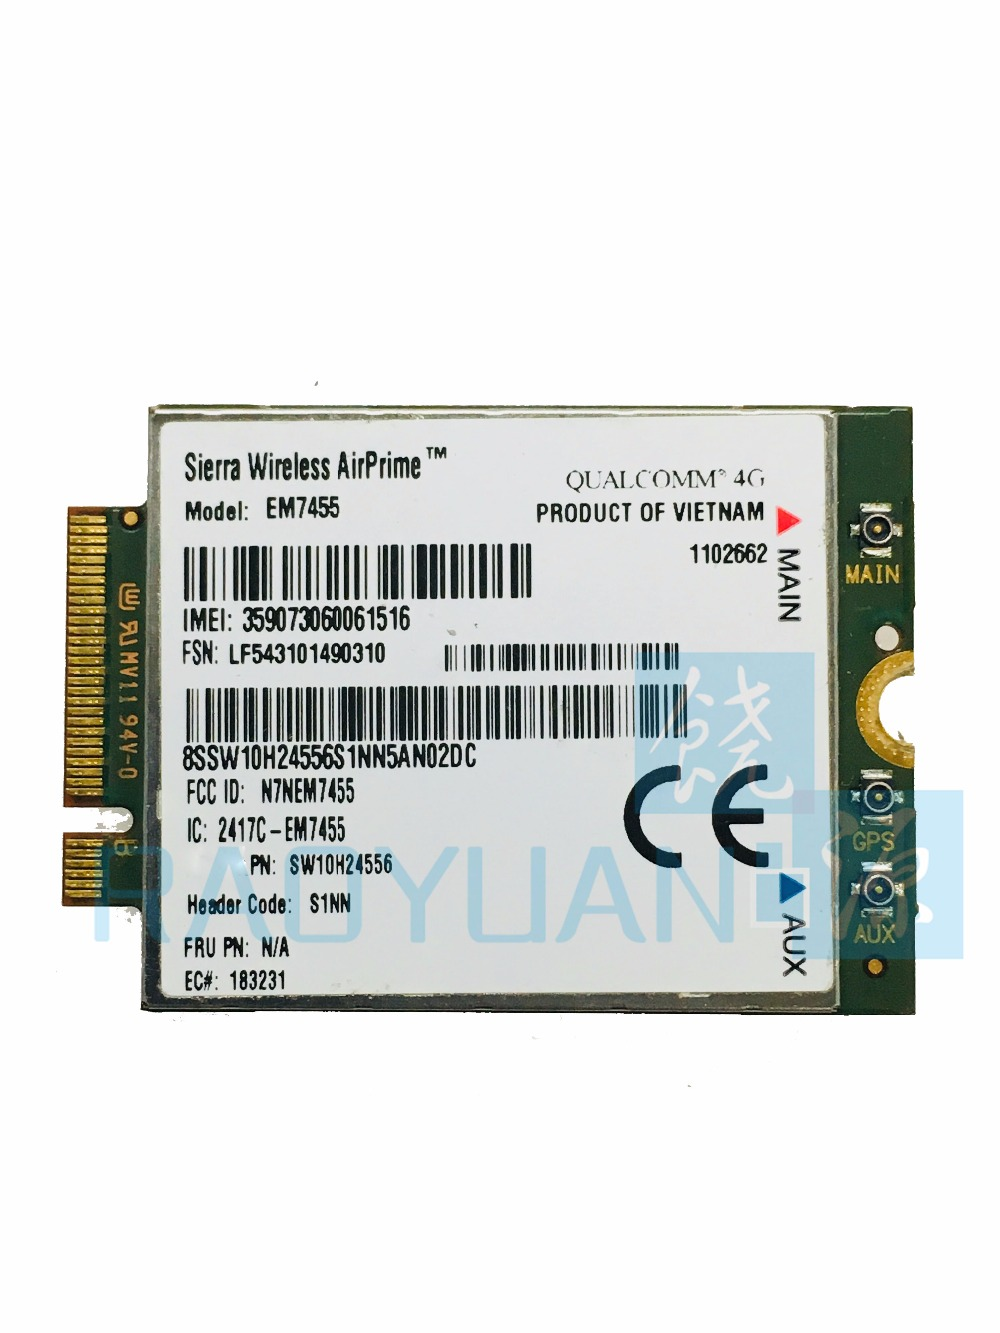 4G LTE WWAN CARD for Sierra Wireless Airprime EM7455 QUALCOMM FRU:S1NN For Lenovo X270 T470 T470S T470P P51 P71 2017 X1 brand new for intel 7265ngw bn wireless n 7265 ngff wireless wifi card laptop network wlan adapter fru 04x6032 for ibm lenovo